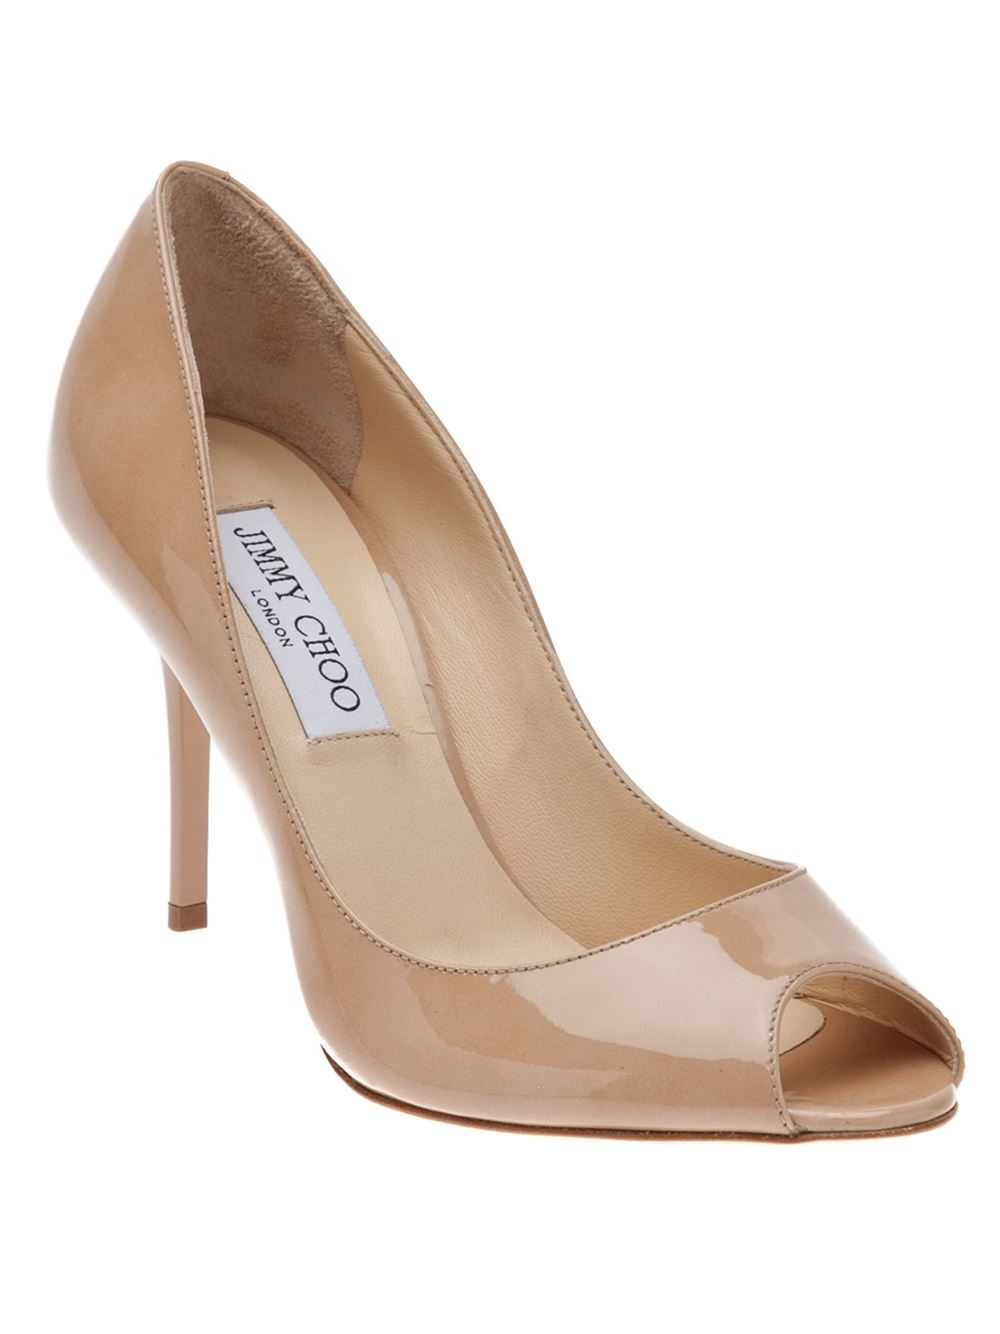 8f9b9b605c0 Lyst - Jimmy Choo Evelyn Pump in Natural